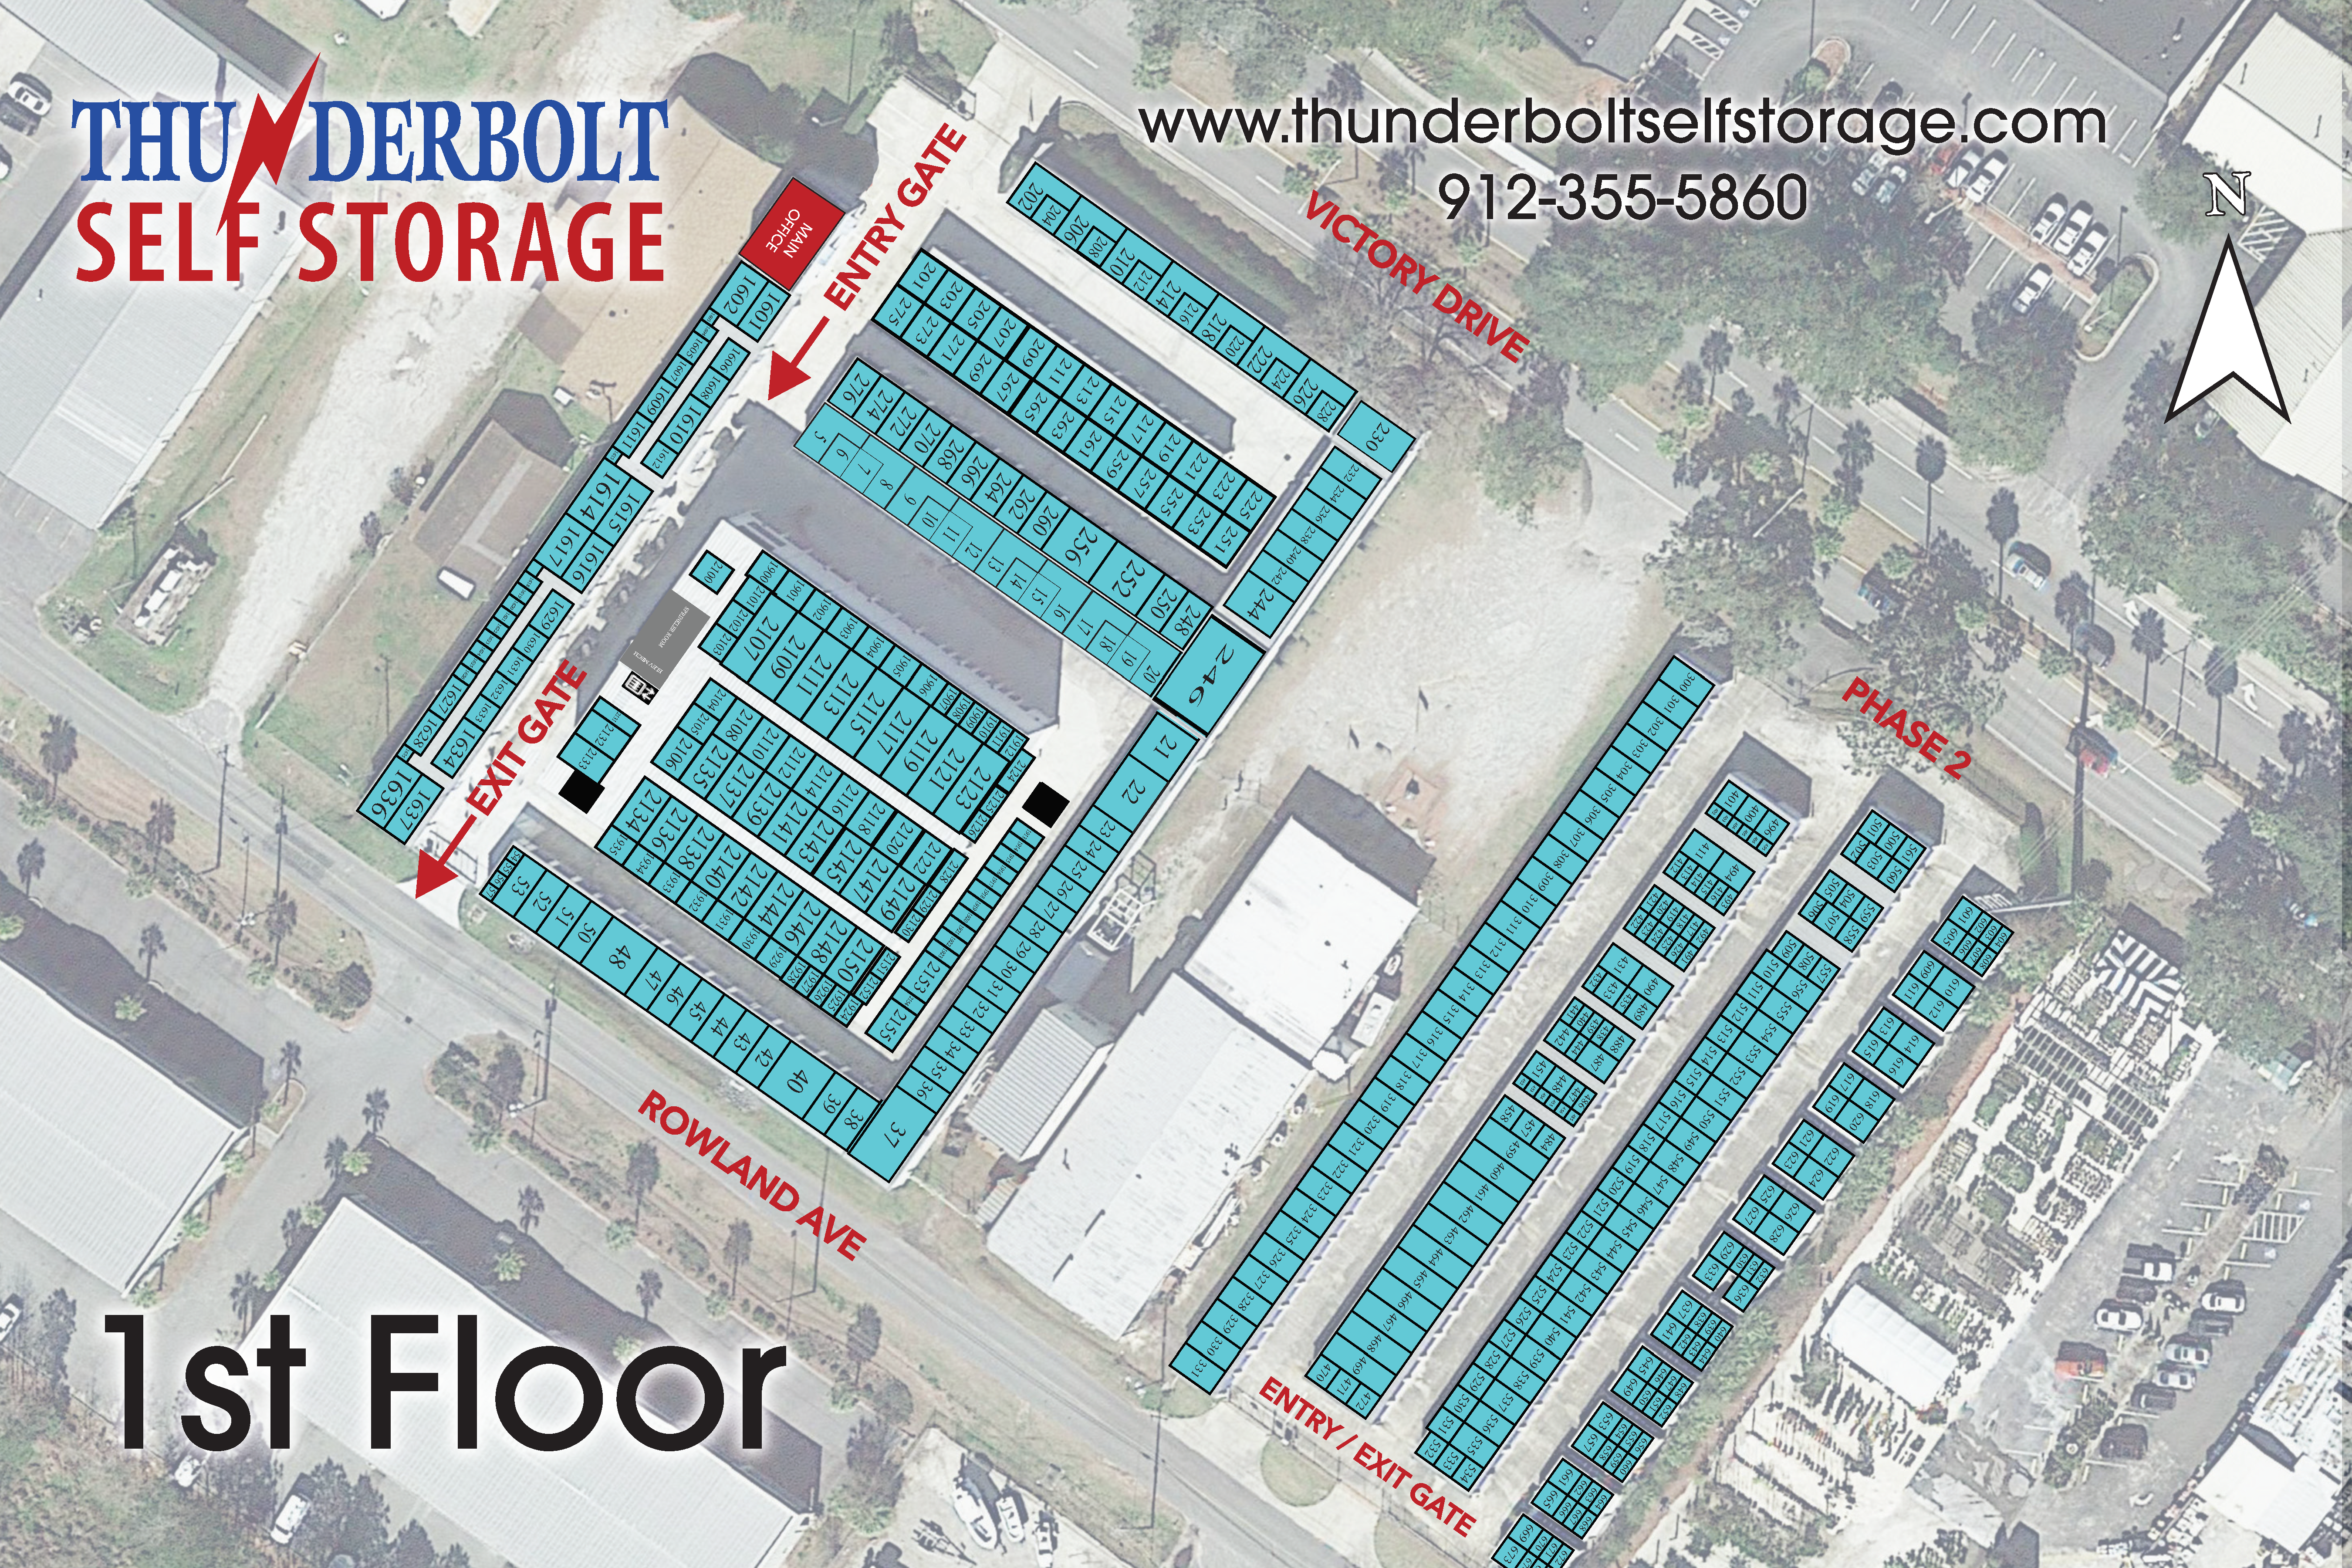 Thunderbolt Self Storage Map